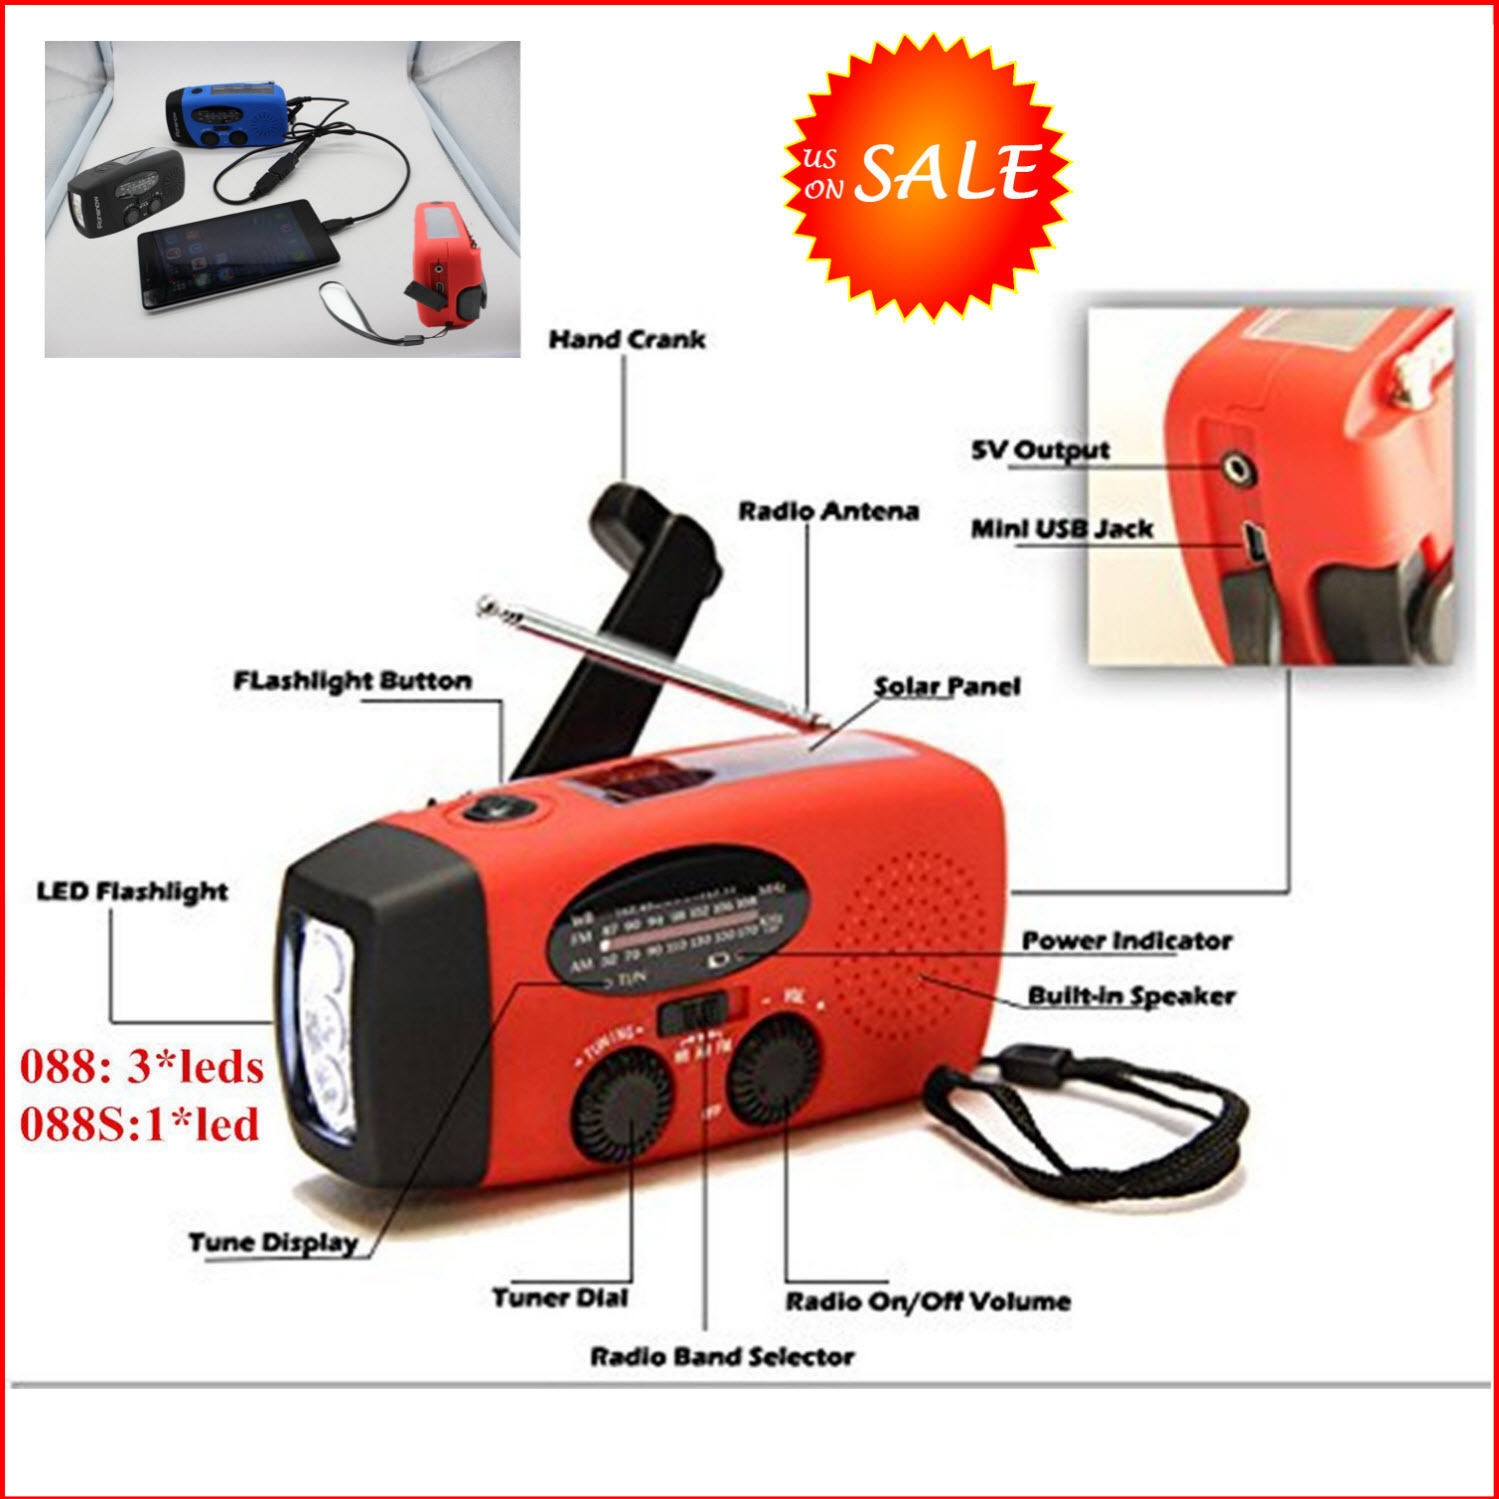 Red Weather Radio Emergency Hand Crank Radio Generator Solar AM/FM/WB Weather Radio Flashlight ch arger